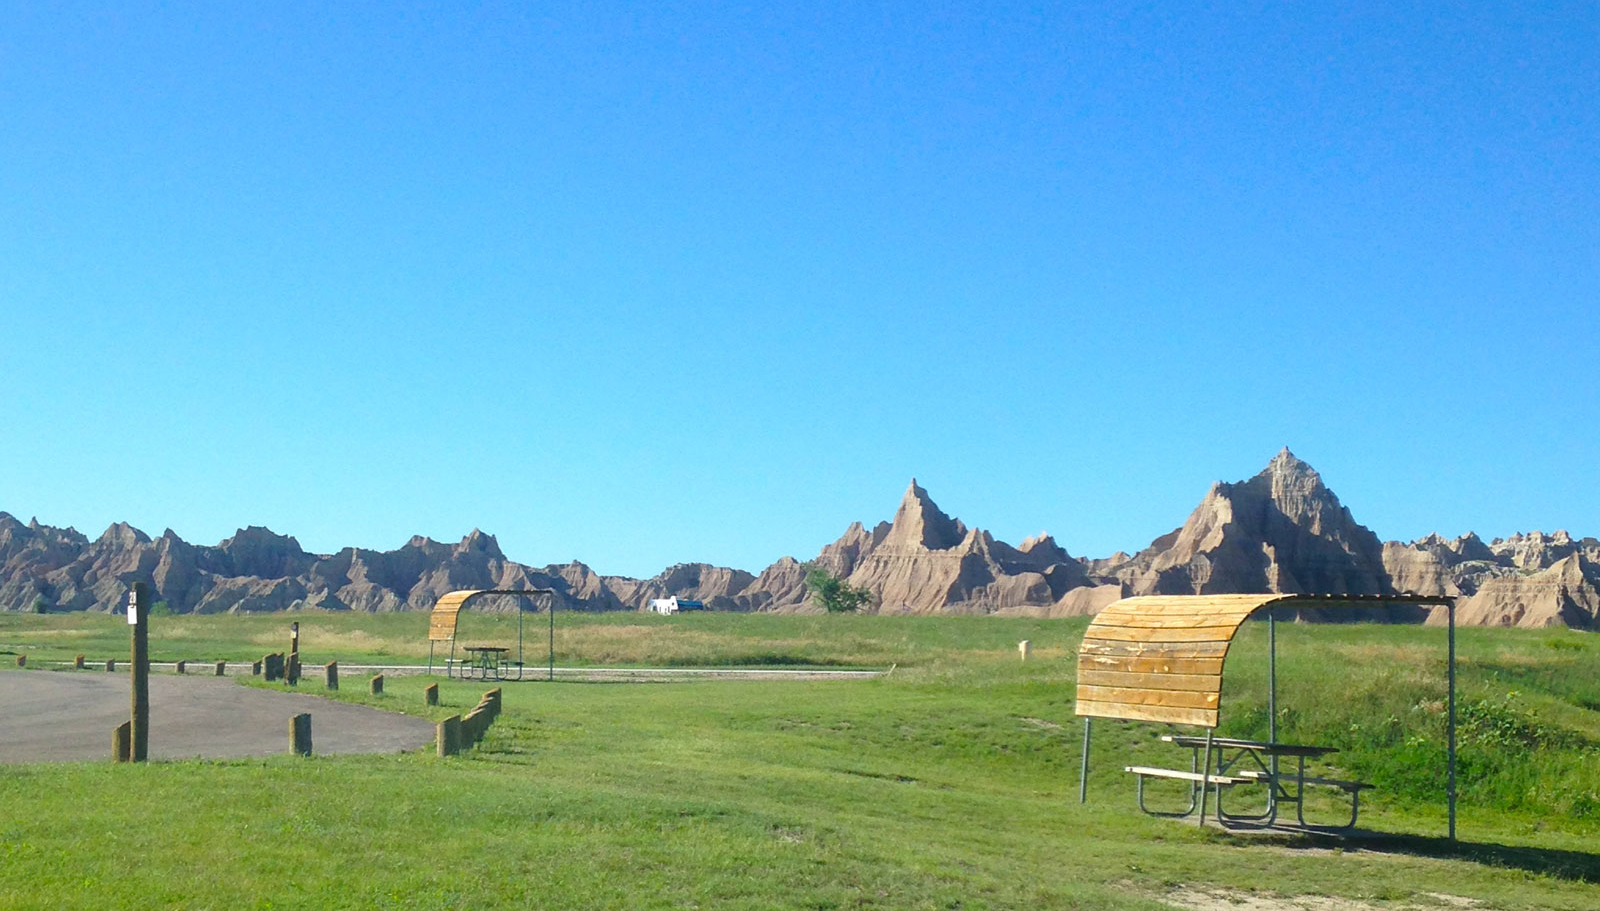 Cedar Pass Campground with covered picnic tables and Badlands National Park as a backdrop